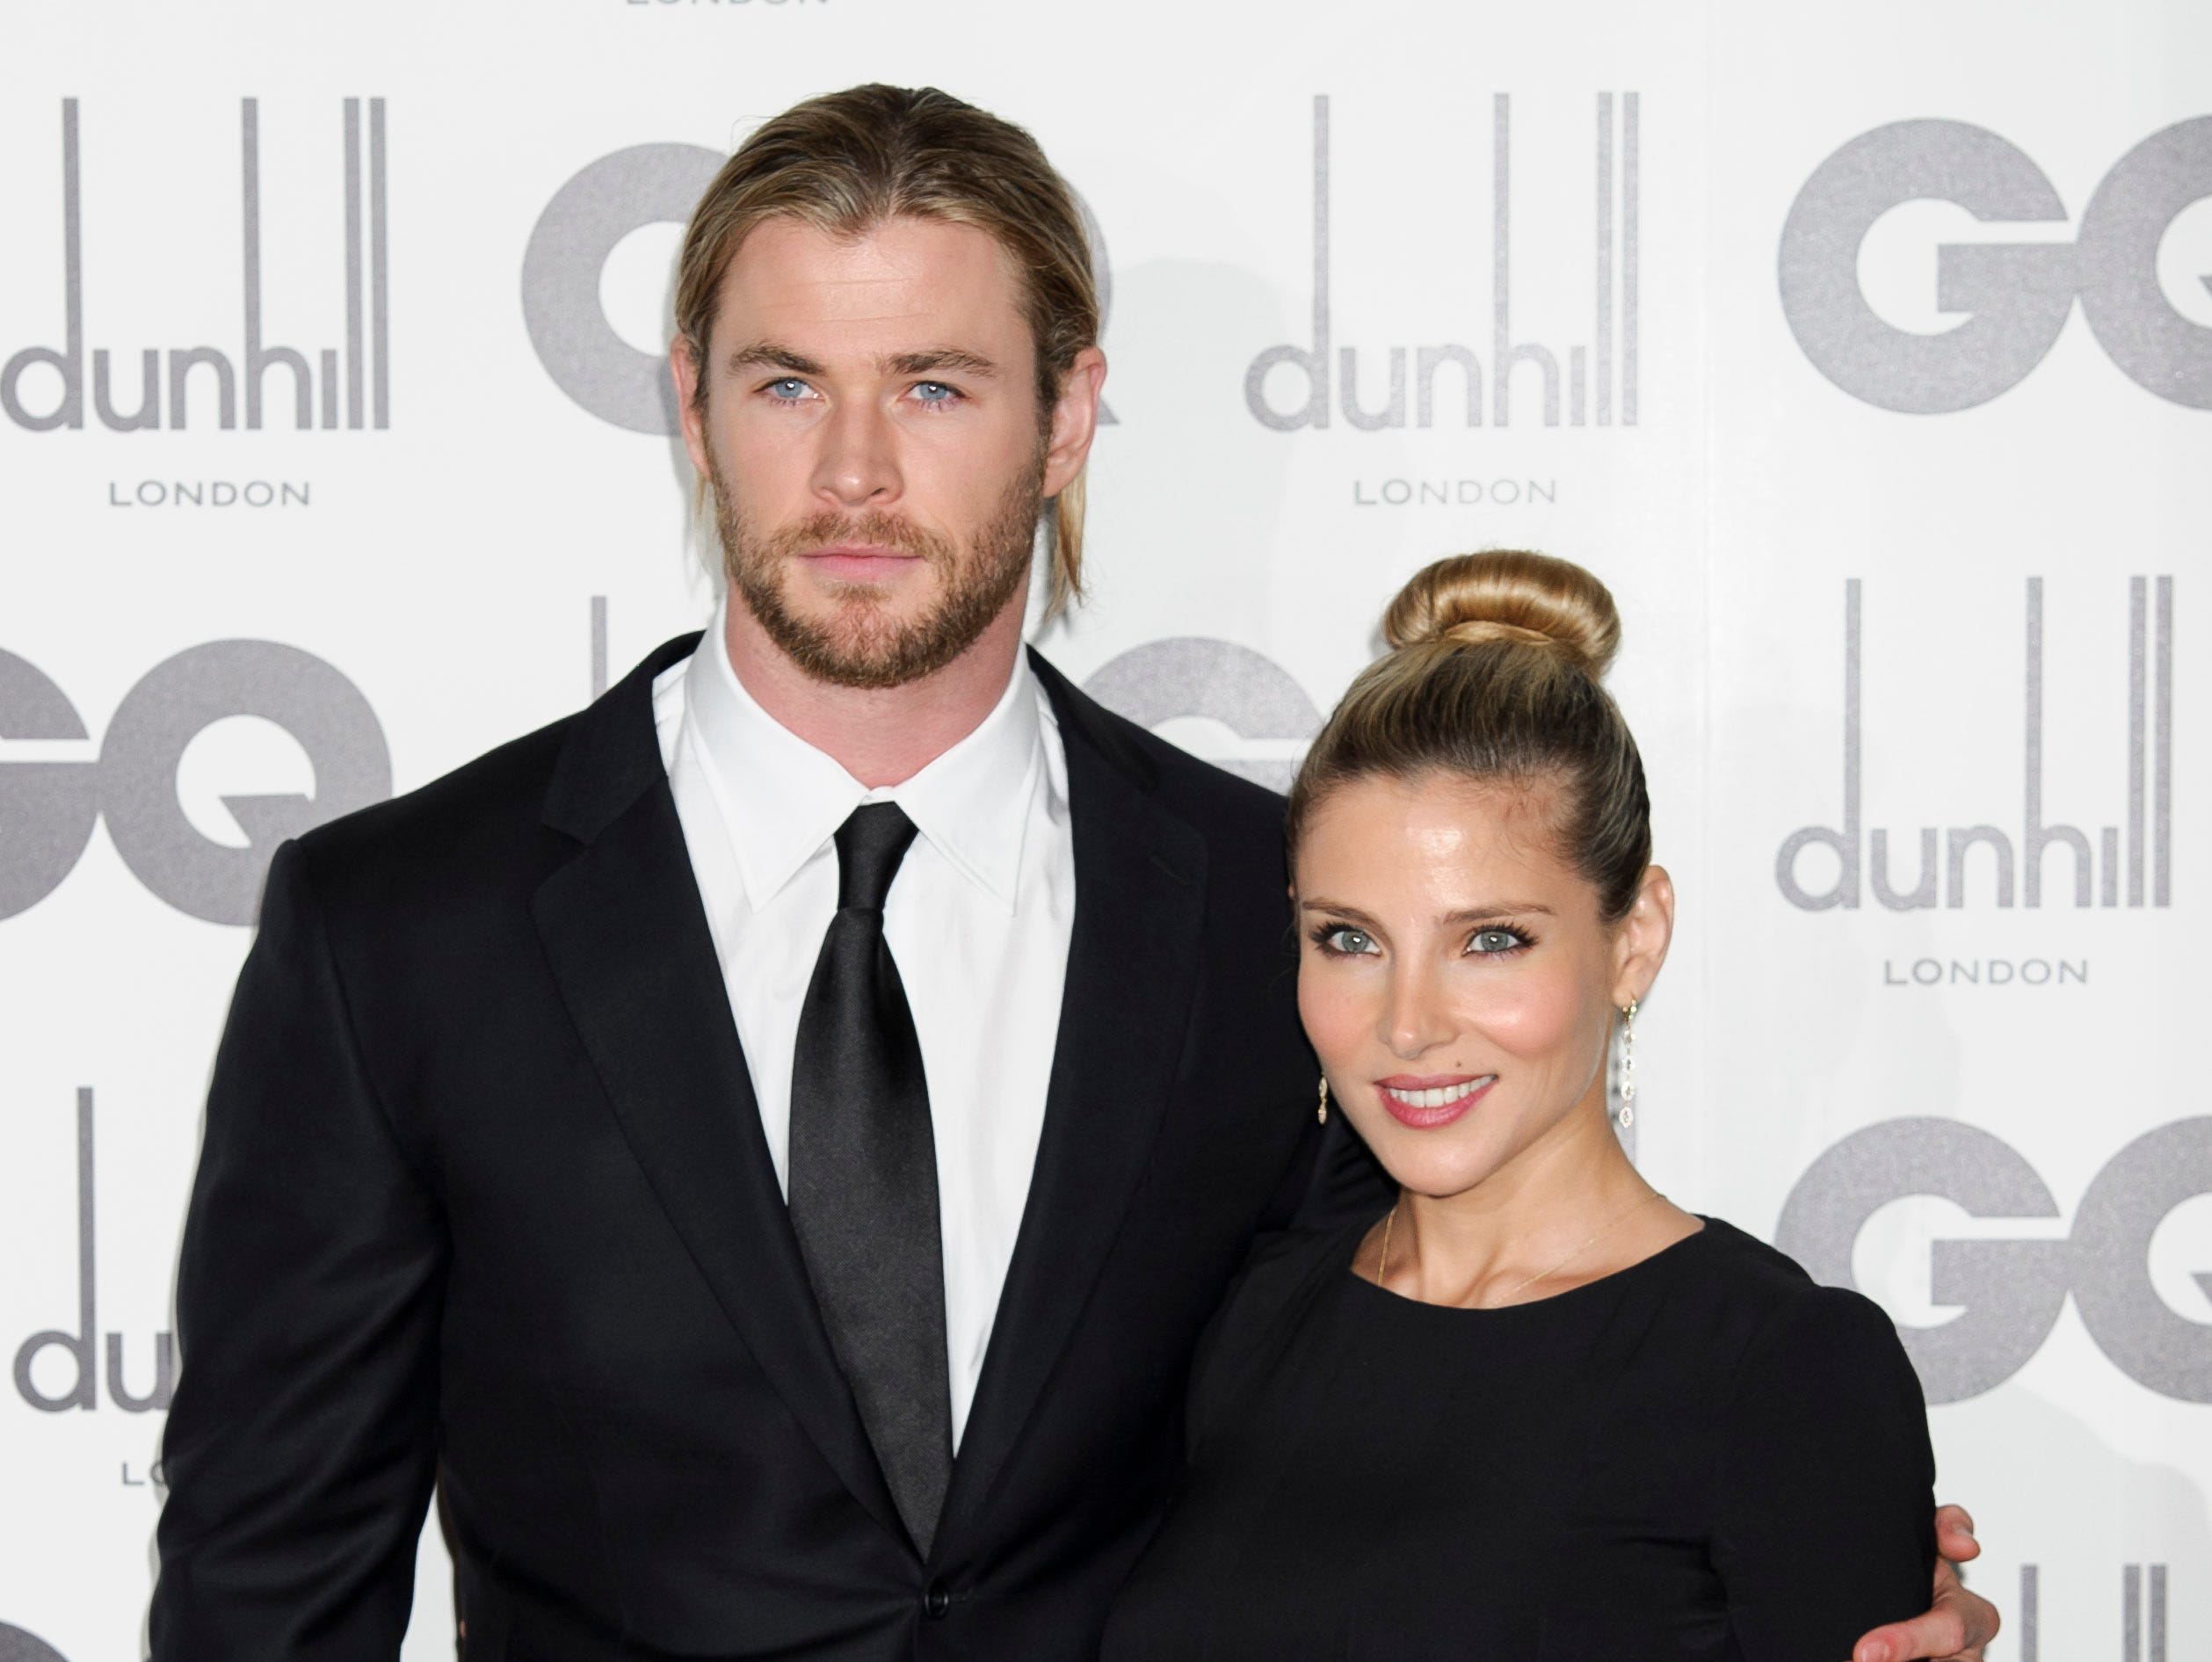 Elsa Pataky and Chris Hemsworth arrive for the GQ Men of the Year Awards at a central London venue, Tuesday, Sept. 4, 2012. (AP Photo/Jonathan Short)